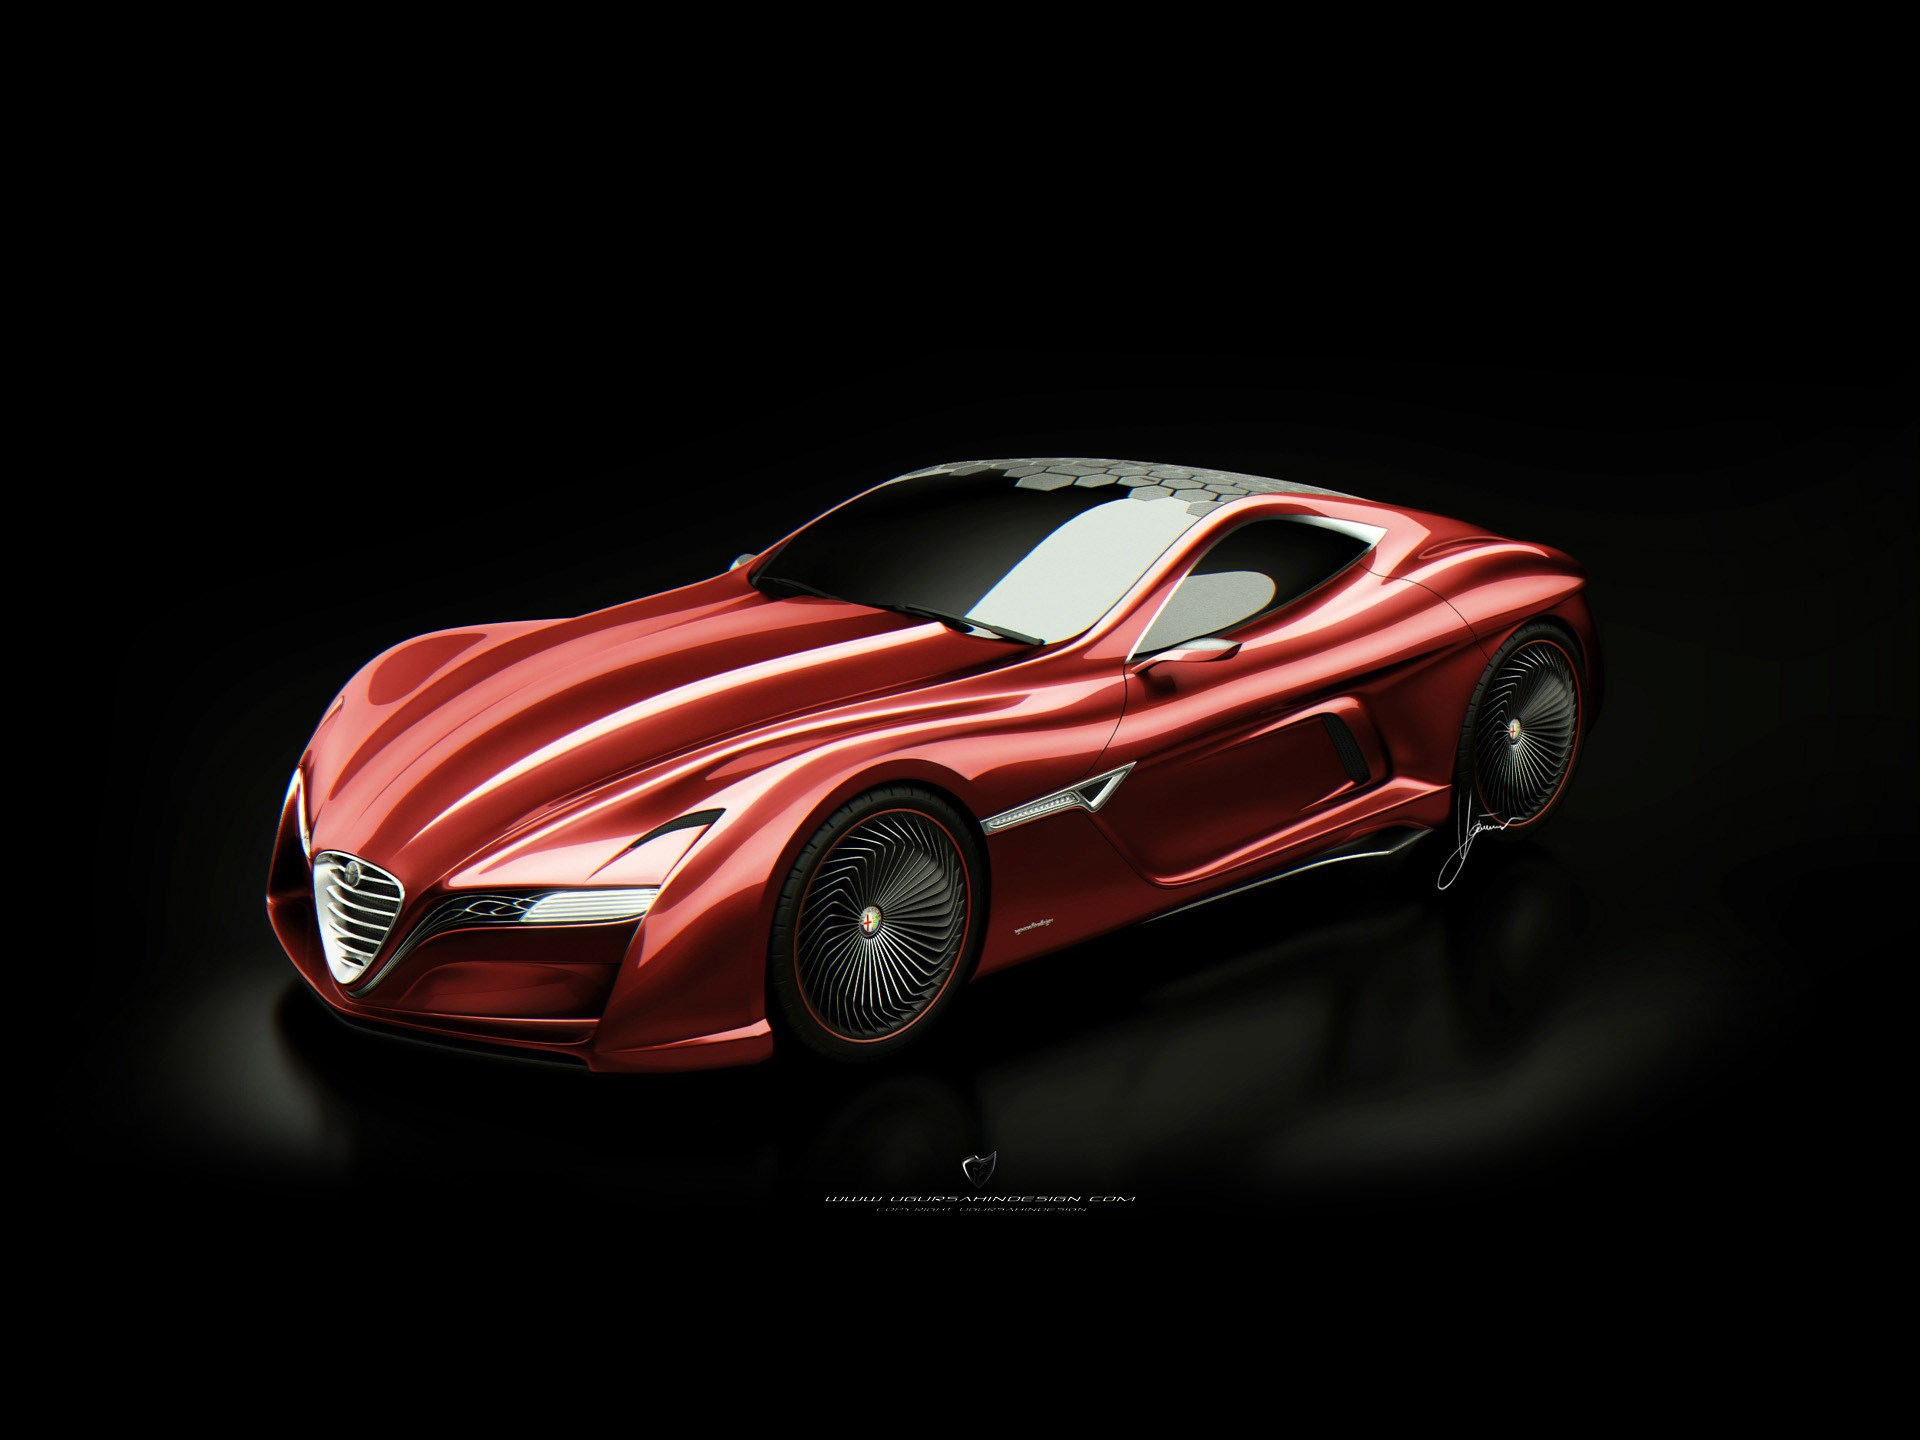 1920x1440 - Alfa Romeo 12C GTS Wallpapers 17